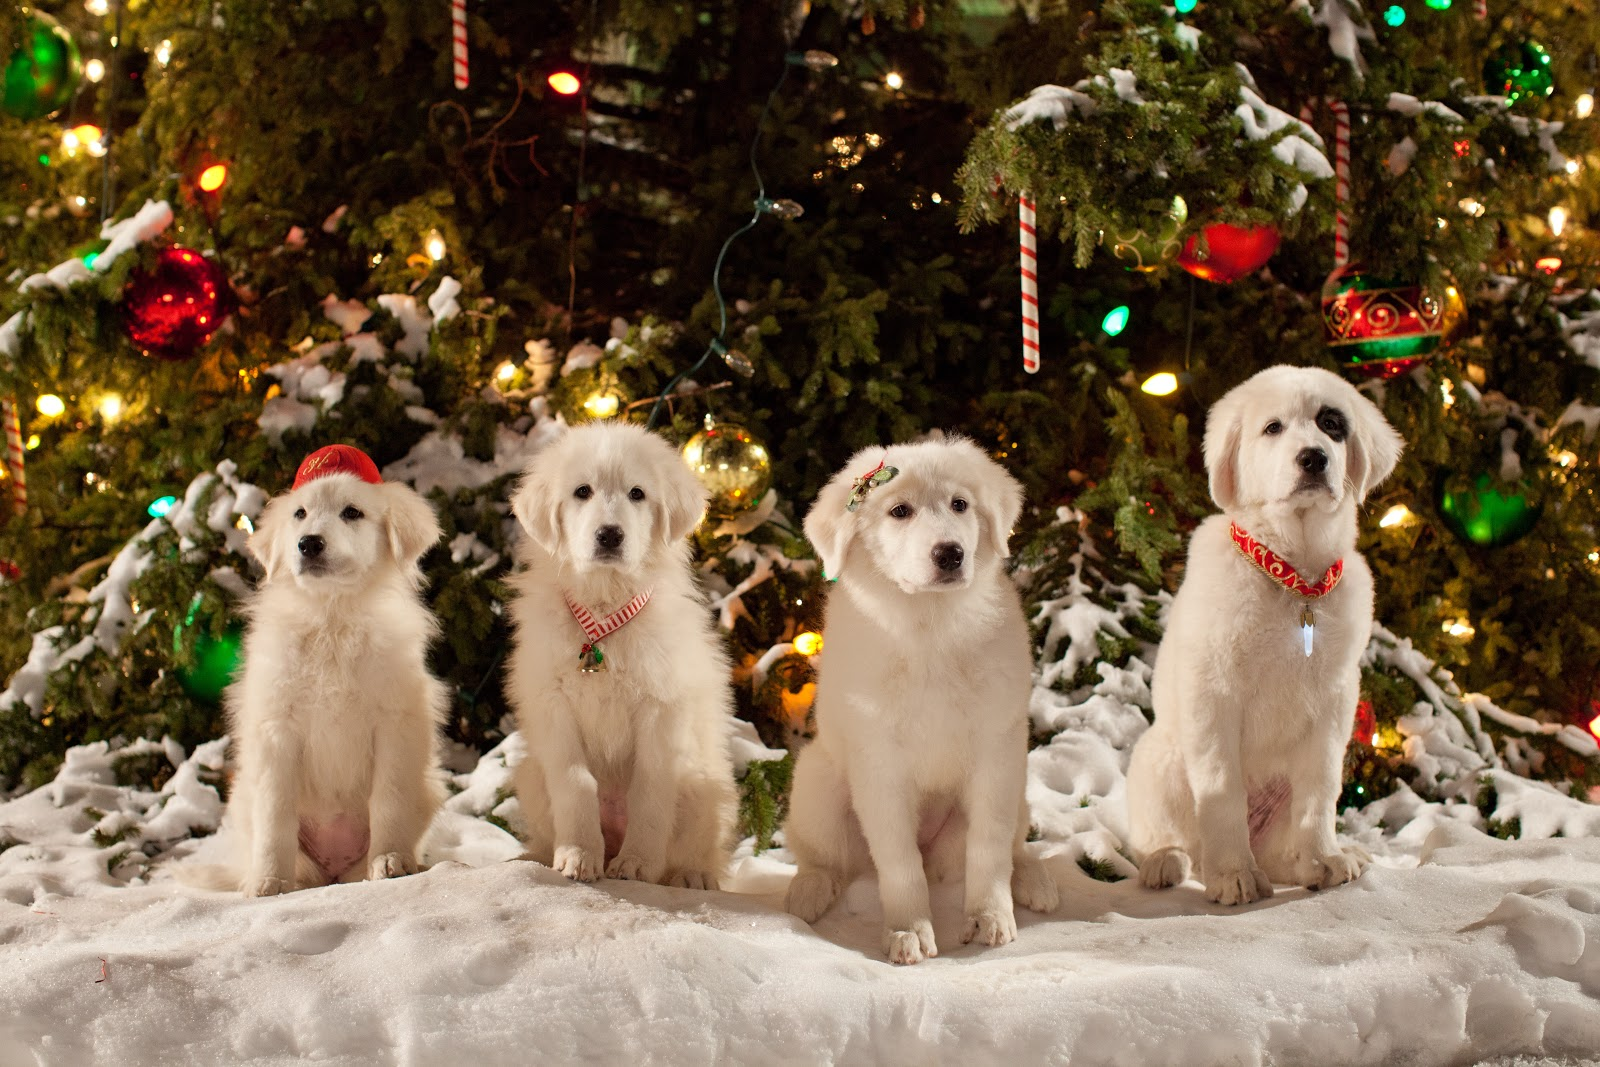 'Cinderella' and 'Santa Paws 2' direct-to-DVD releases for the die-hard princess and dog lovers only